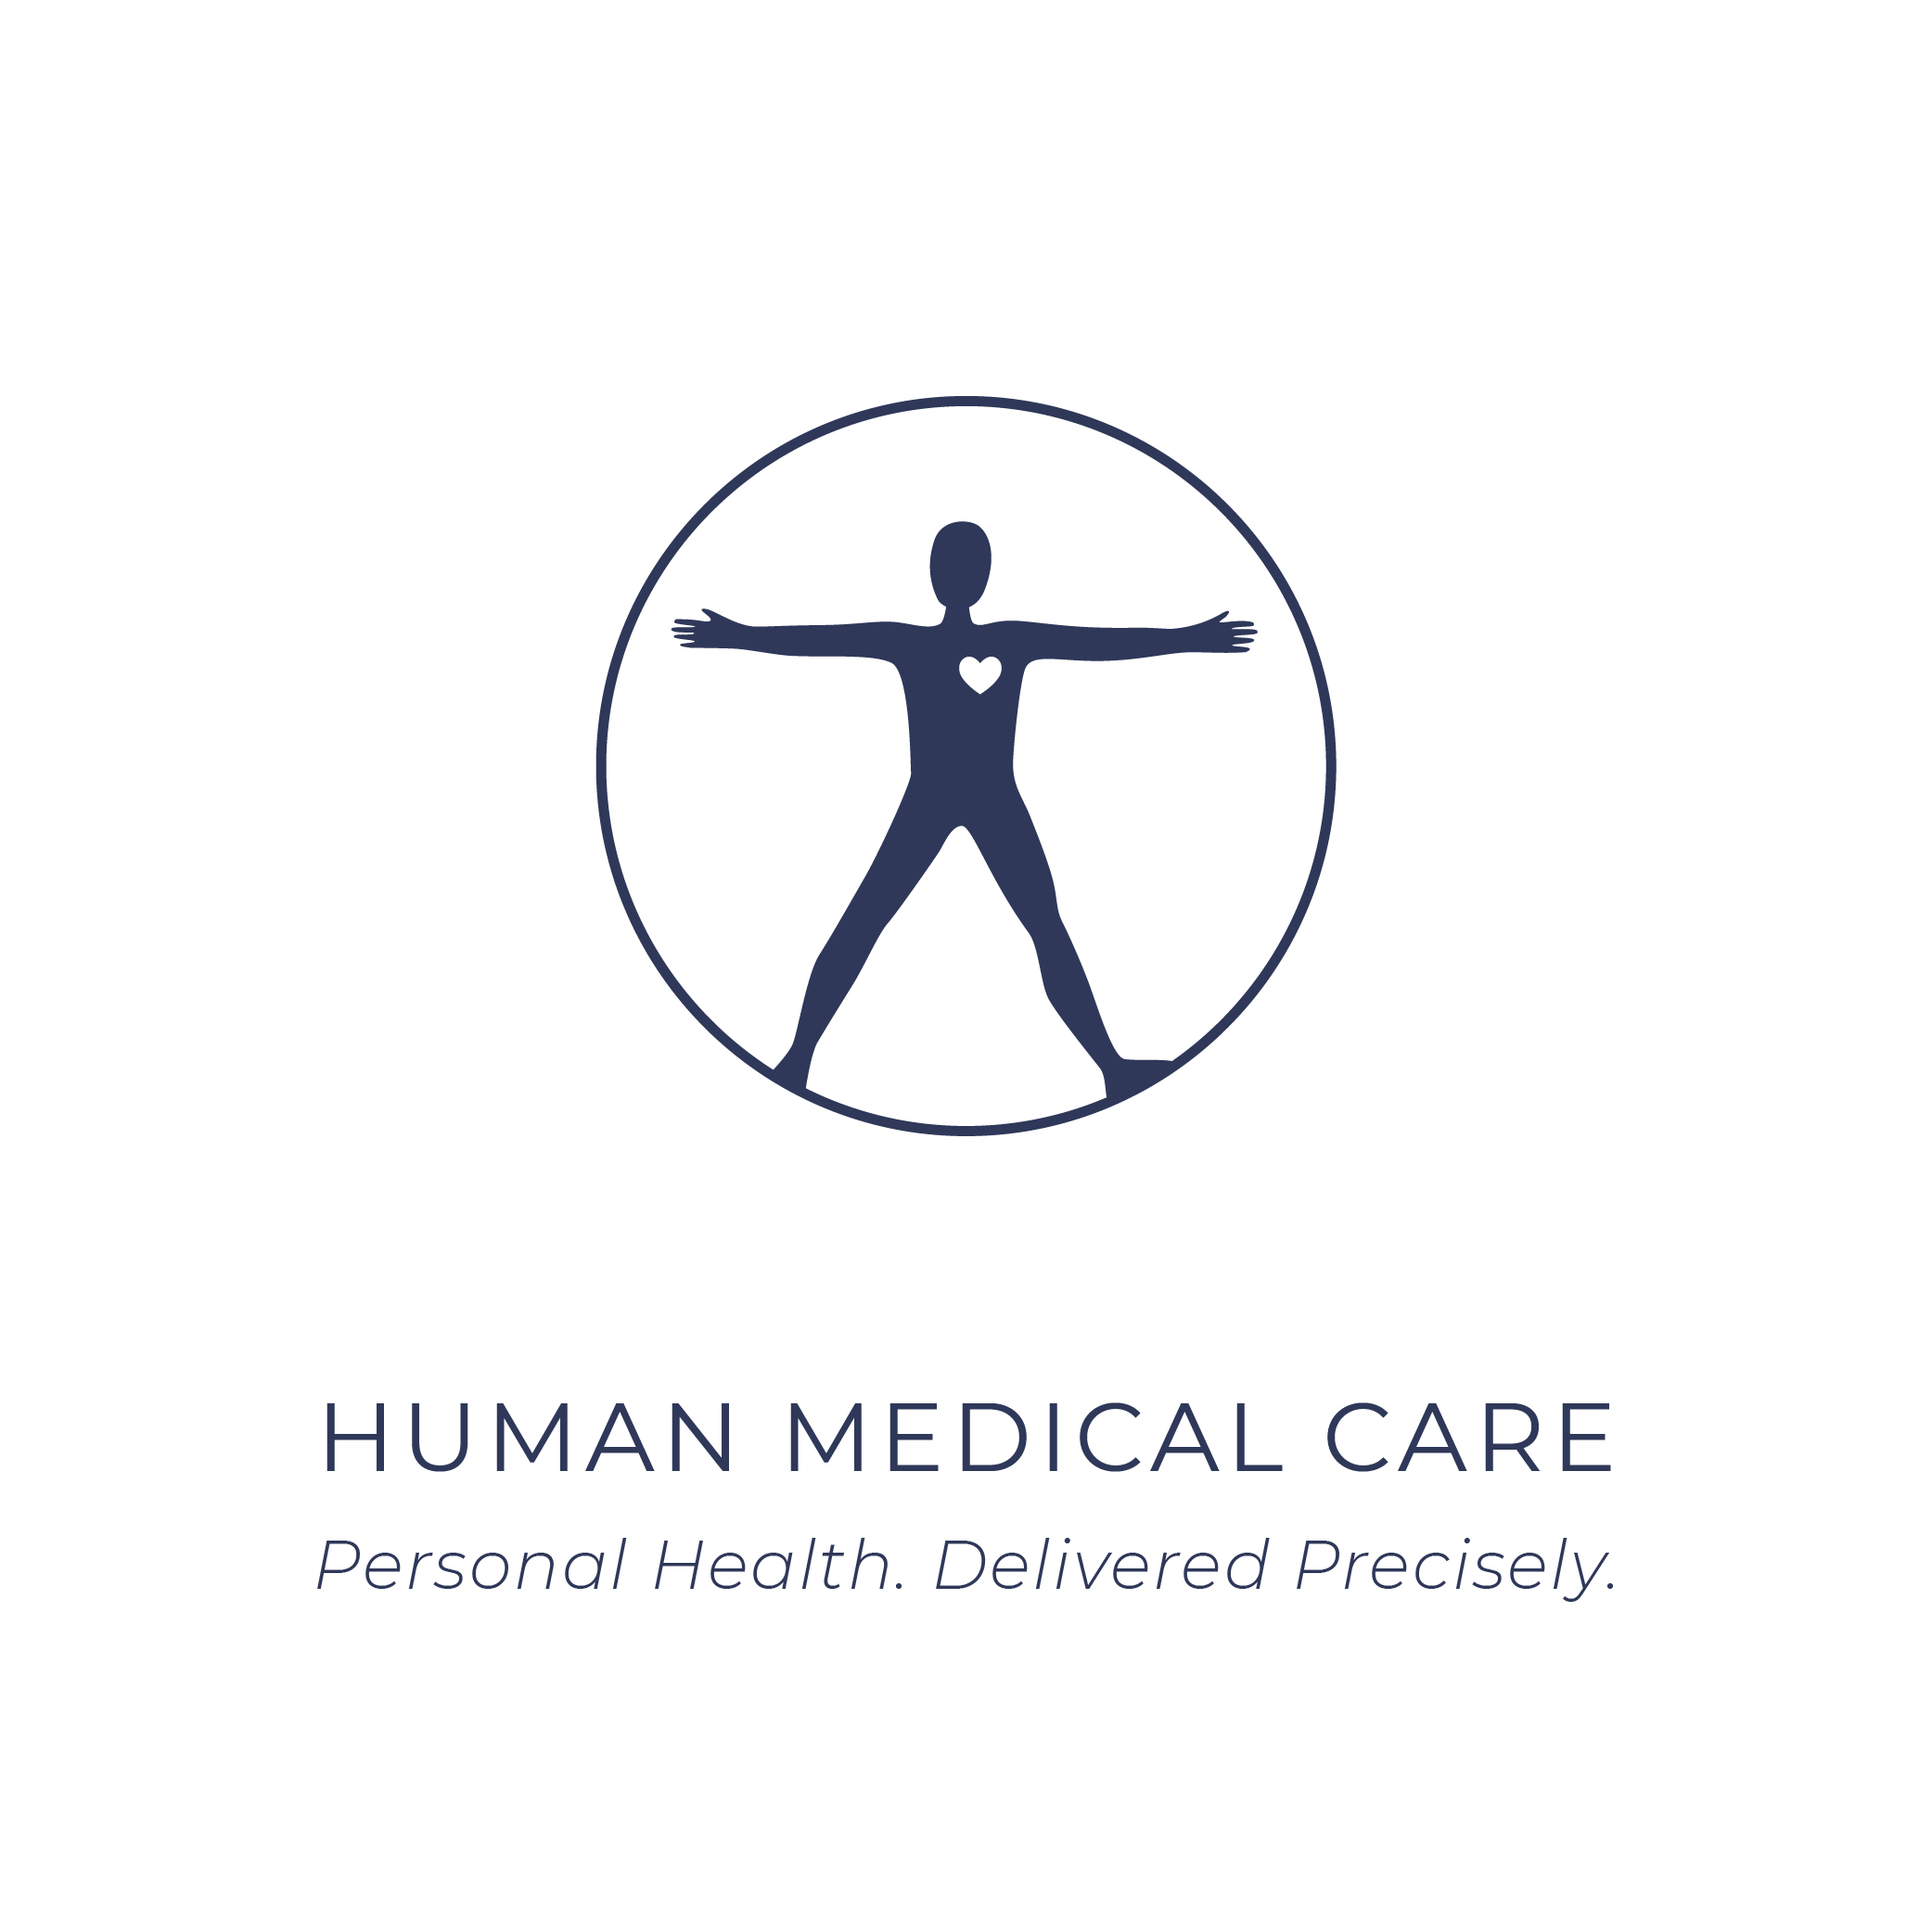 LOGO HUMAN MEDICAL CARE FINAL copy-11.jpg